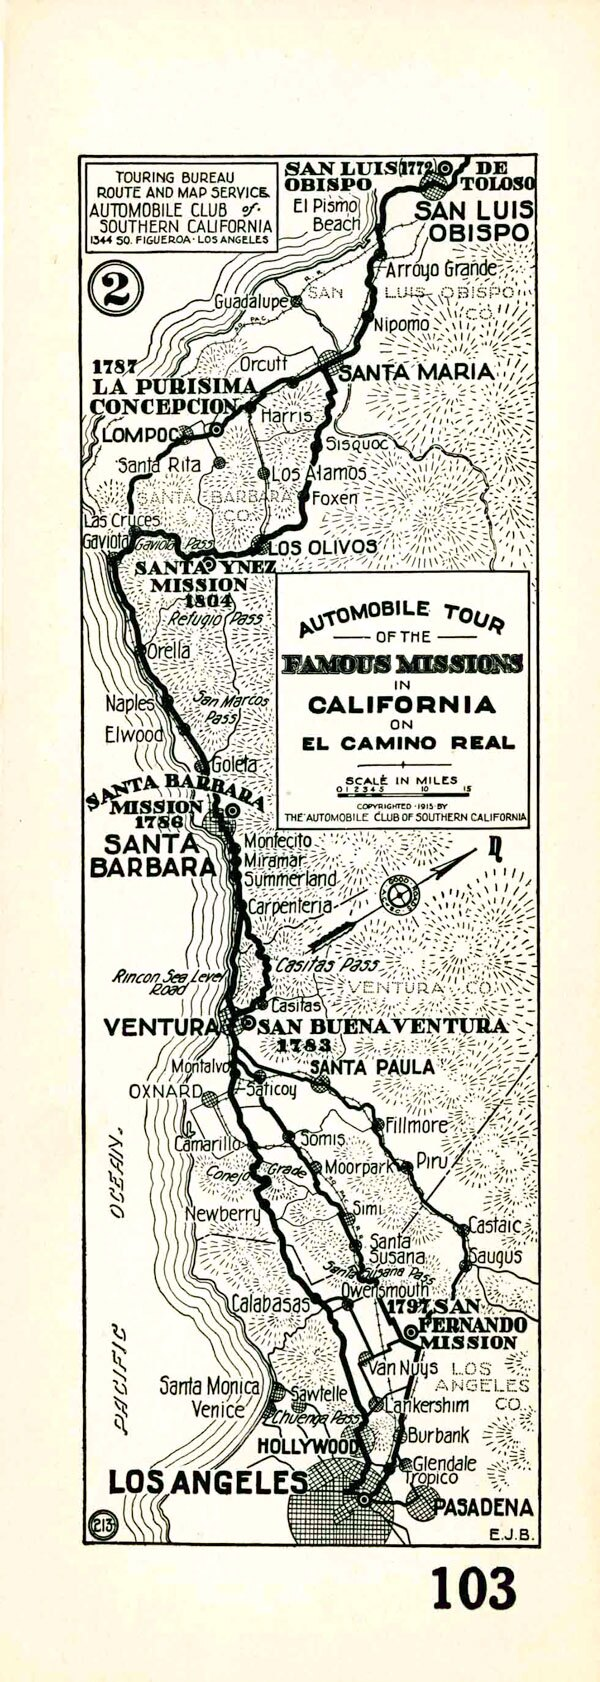 1915 Auto Club strip map showing the route of El Camino Real from the central coast to Los Angeles. Courtesy of the Automobile Club of Southern California Archives.